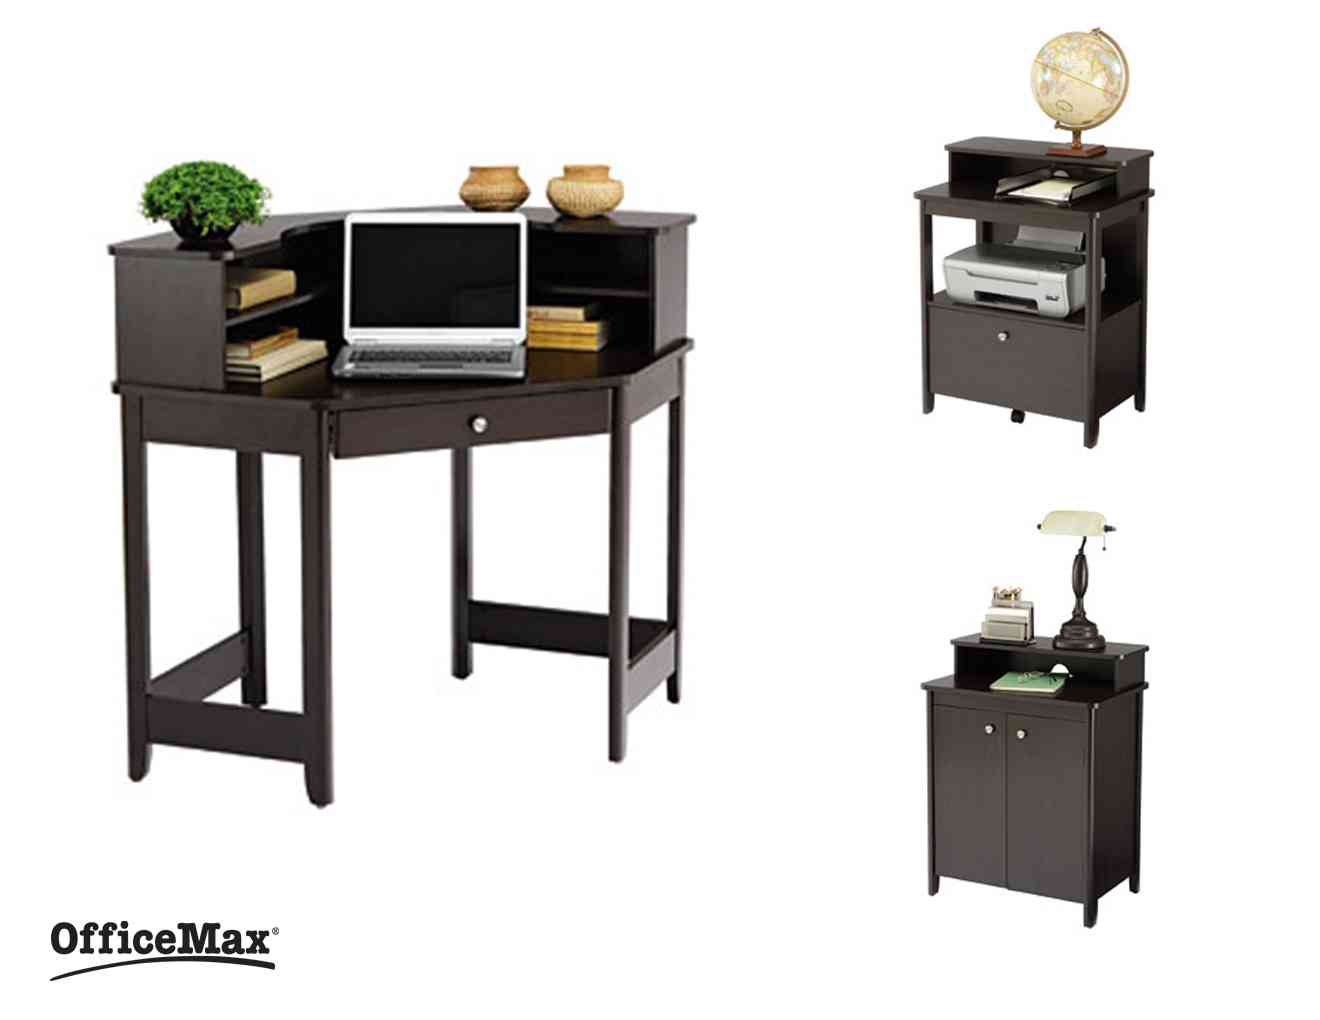 Ergonomic Chairs additionally Minimalist Executive Desks likewise Ameriwood Altra Pursuit Executive Desk NaturalGray furthermore Glass Desk Office Design moreover puter Desks For Sale. on executive desk officemax